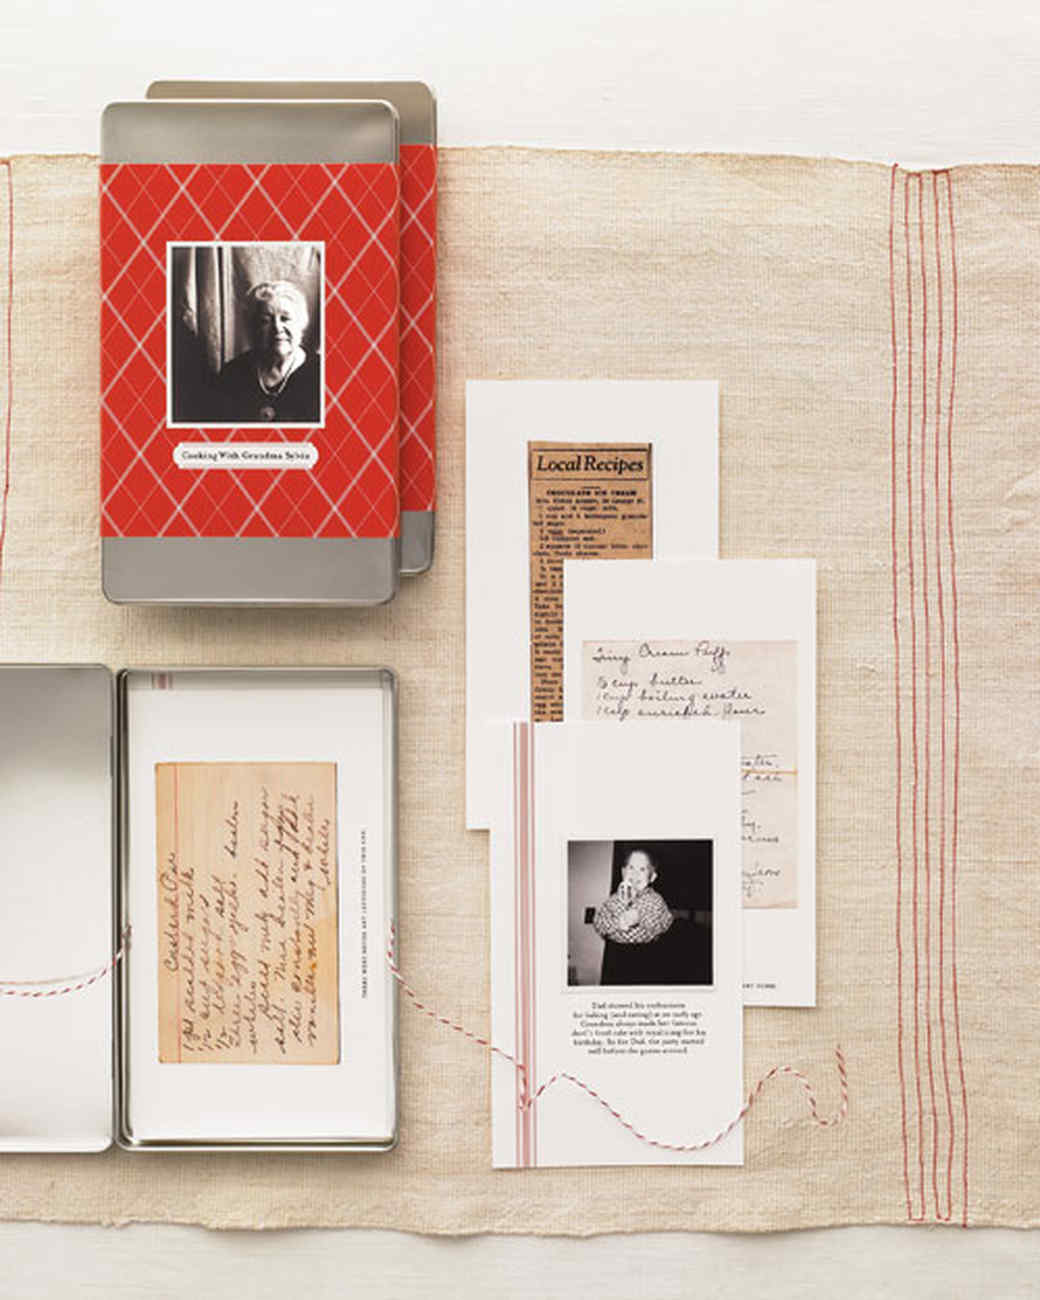 How to create scrapbook in facebook